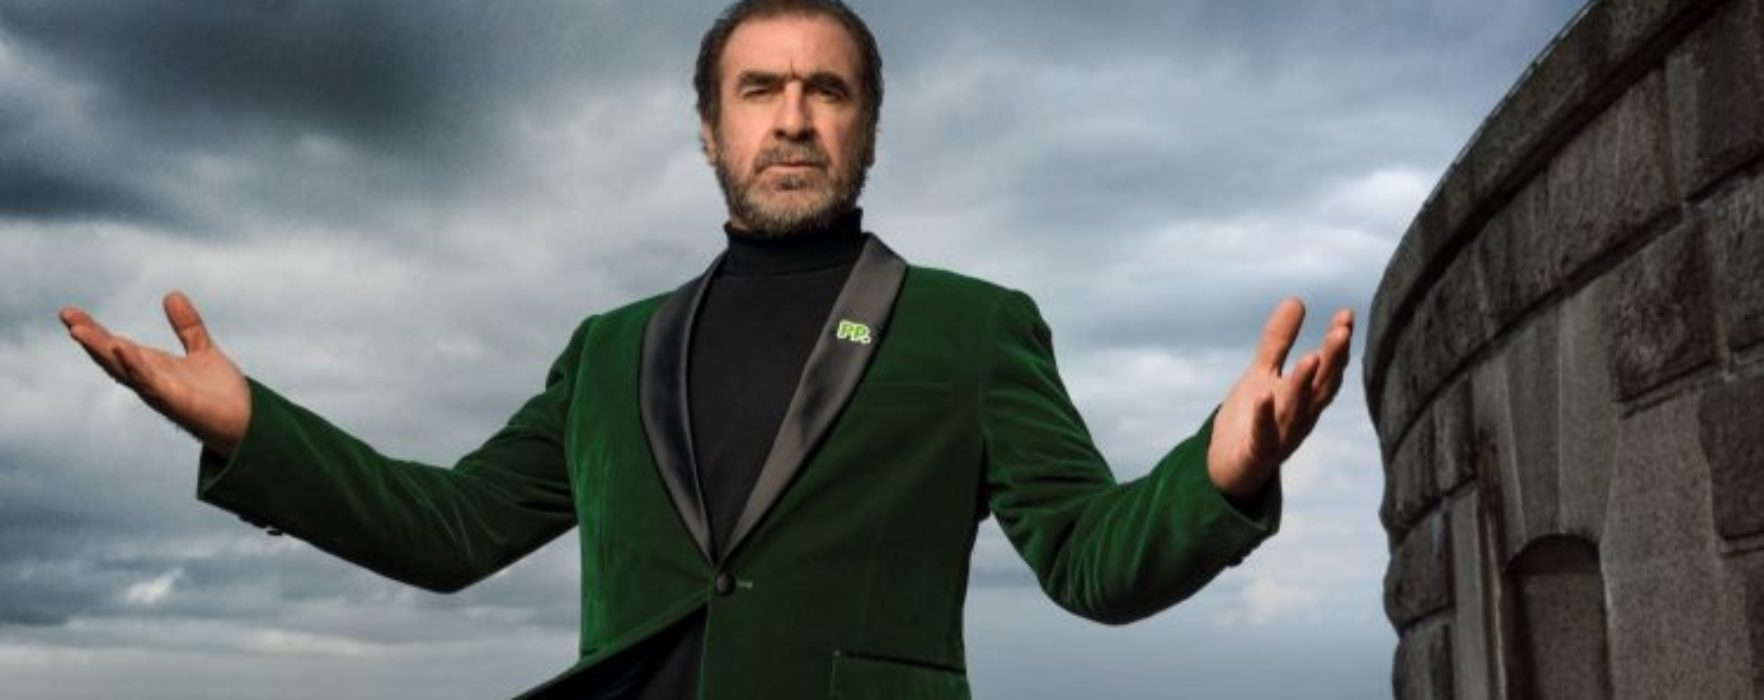 WATCH: Escape Brexit with help from Eric Cantona!